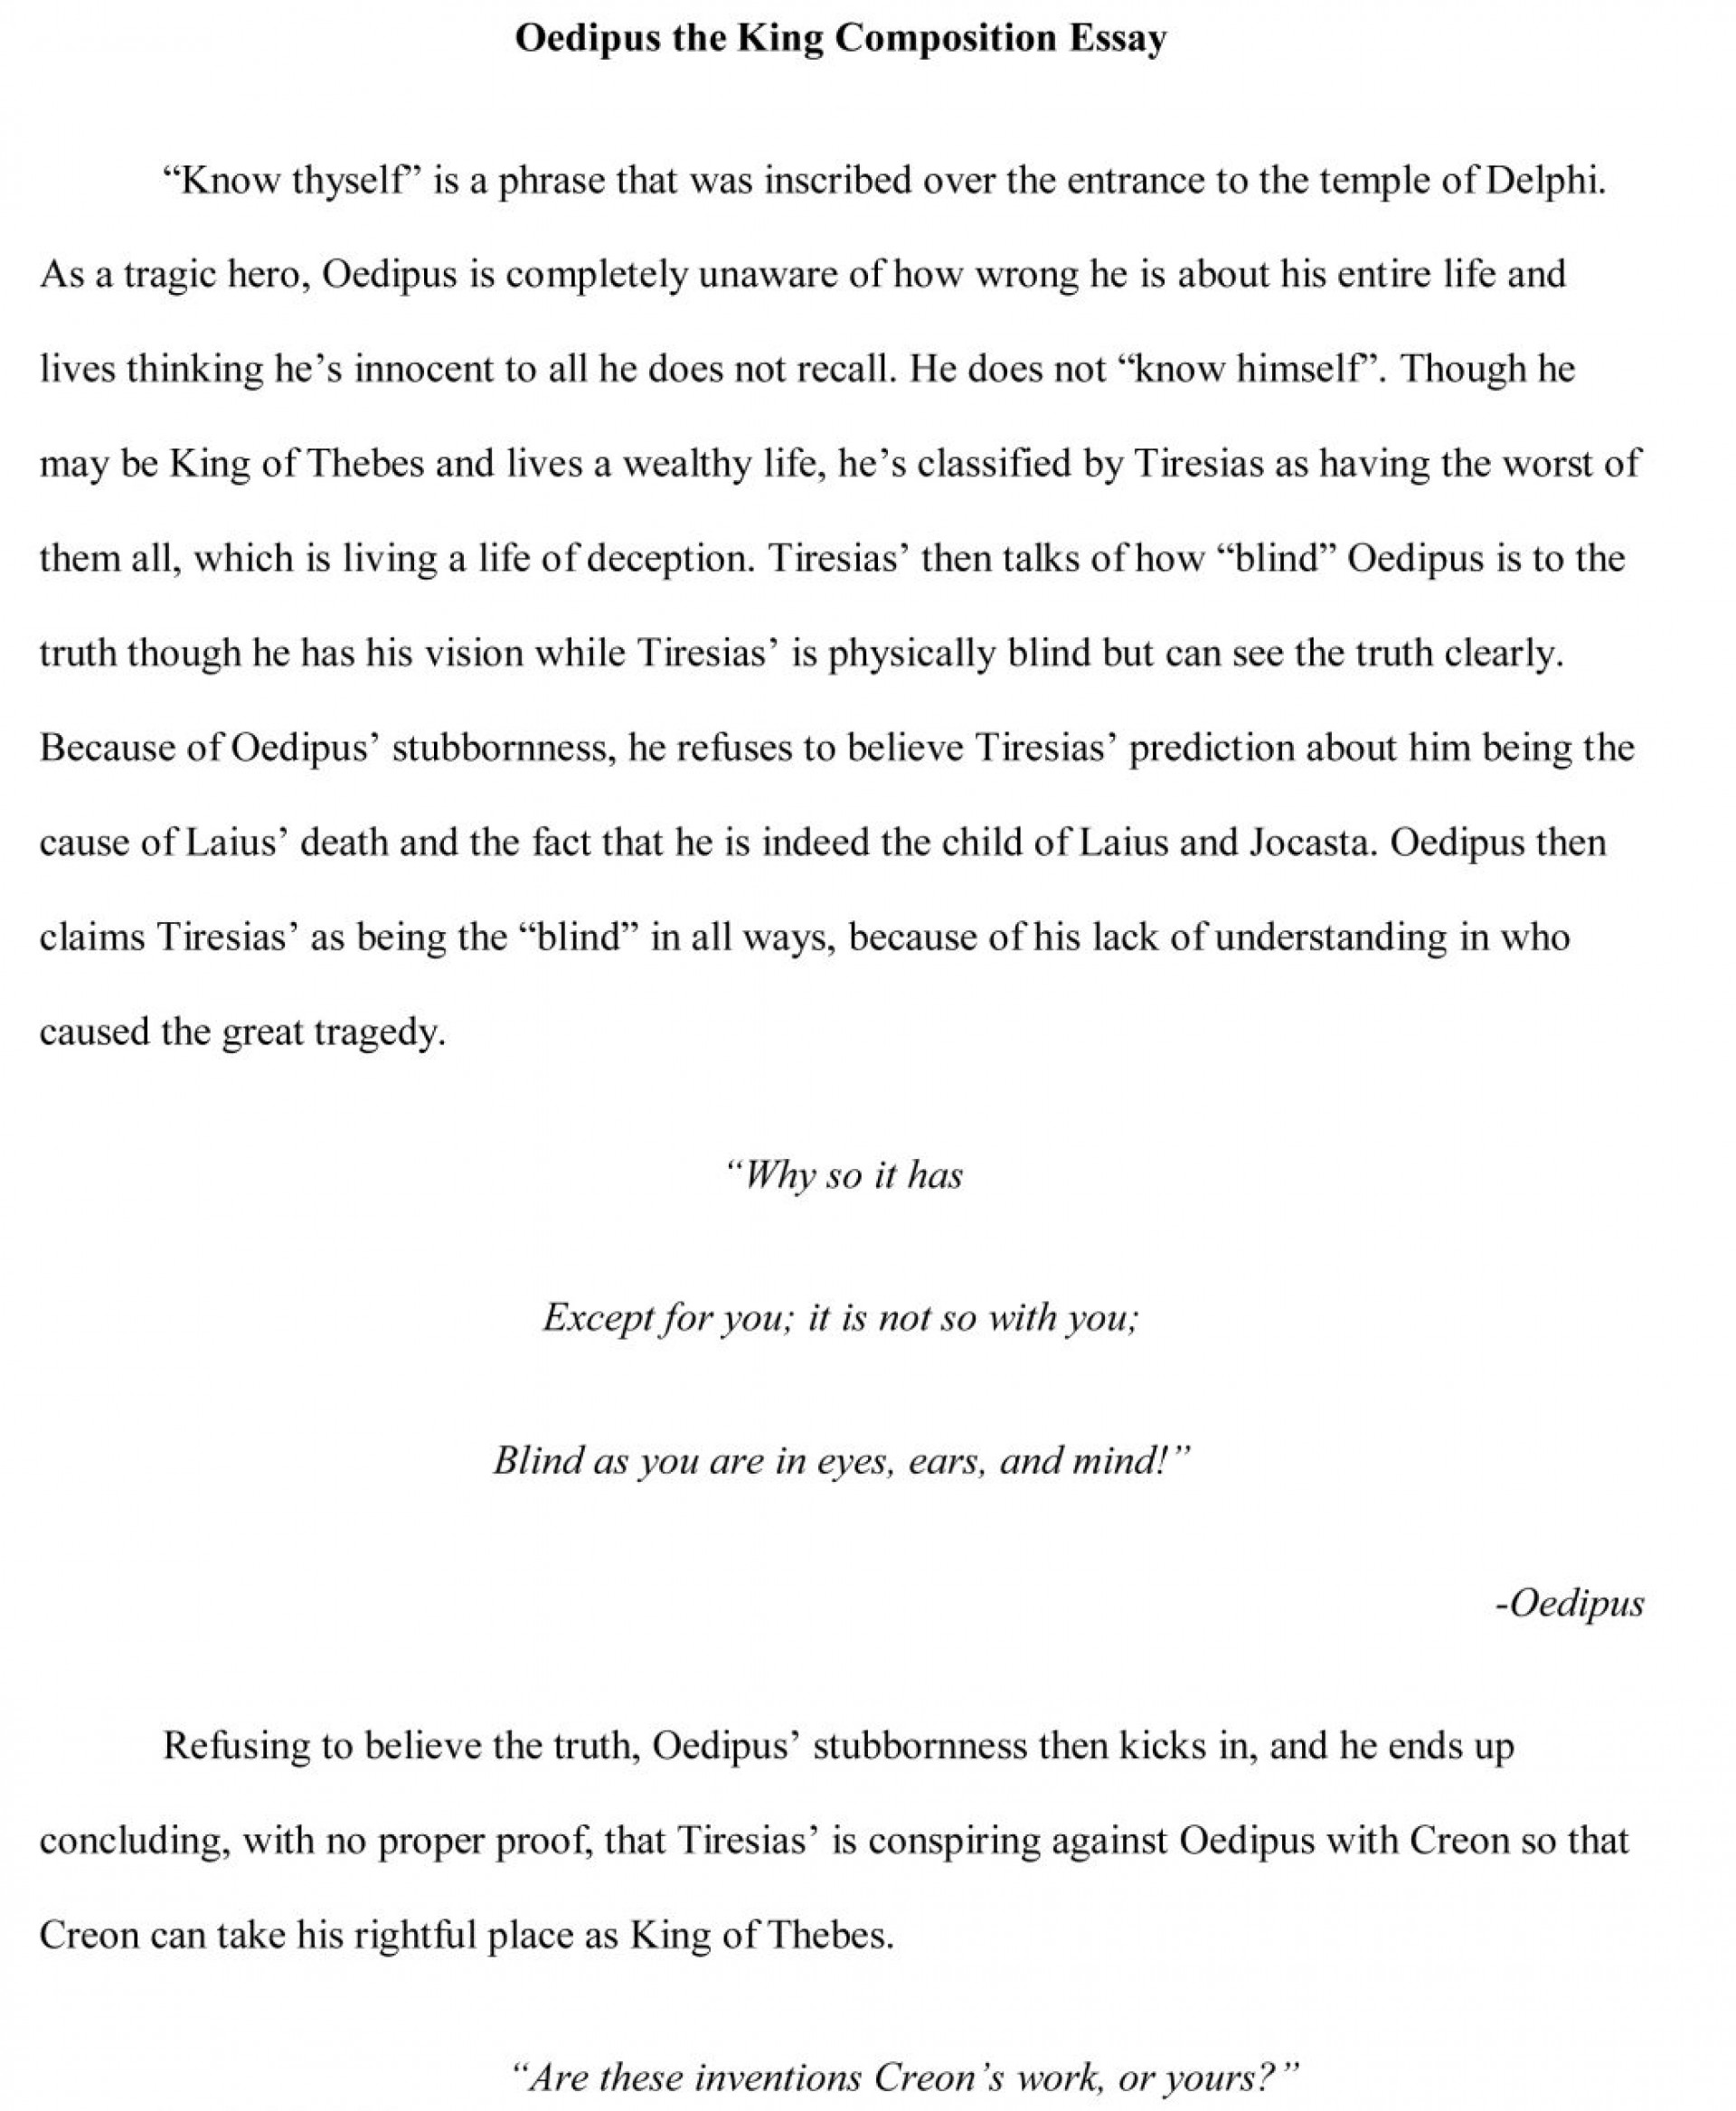 004 Essay Example Compare And Contrast College Topics Easy For Topic Ideas Oedipus Free S Persuasive Students Application Research Paper Descriptive Admission Prompt Imposing Argumentative Without High School 1920